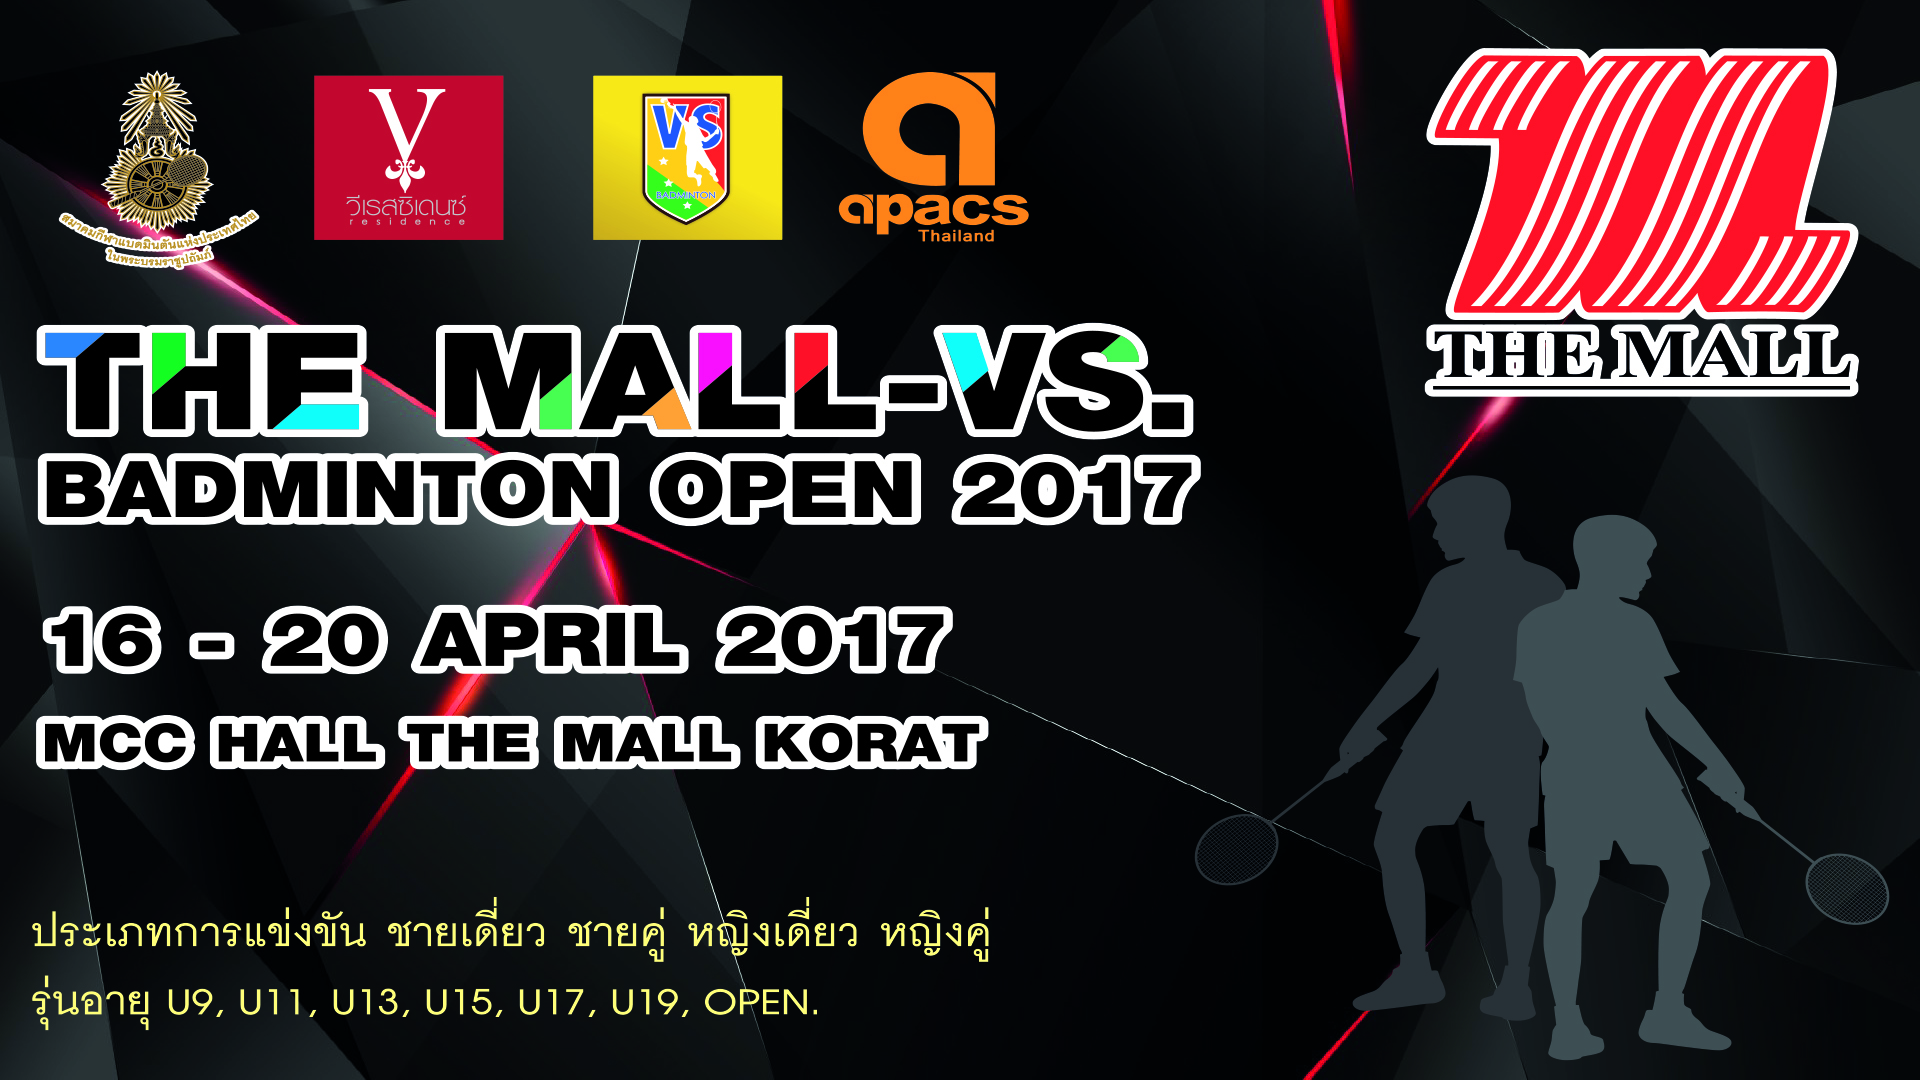 THE MALL - VS  BADMINTON CHAMPION SHIPS 2017